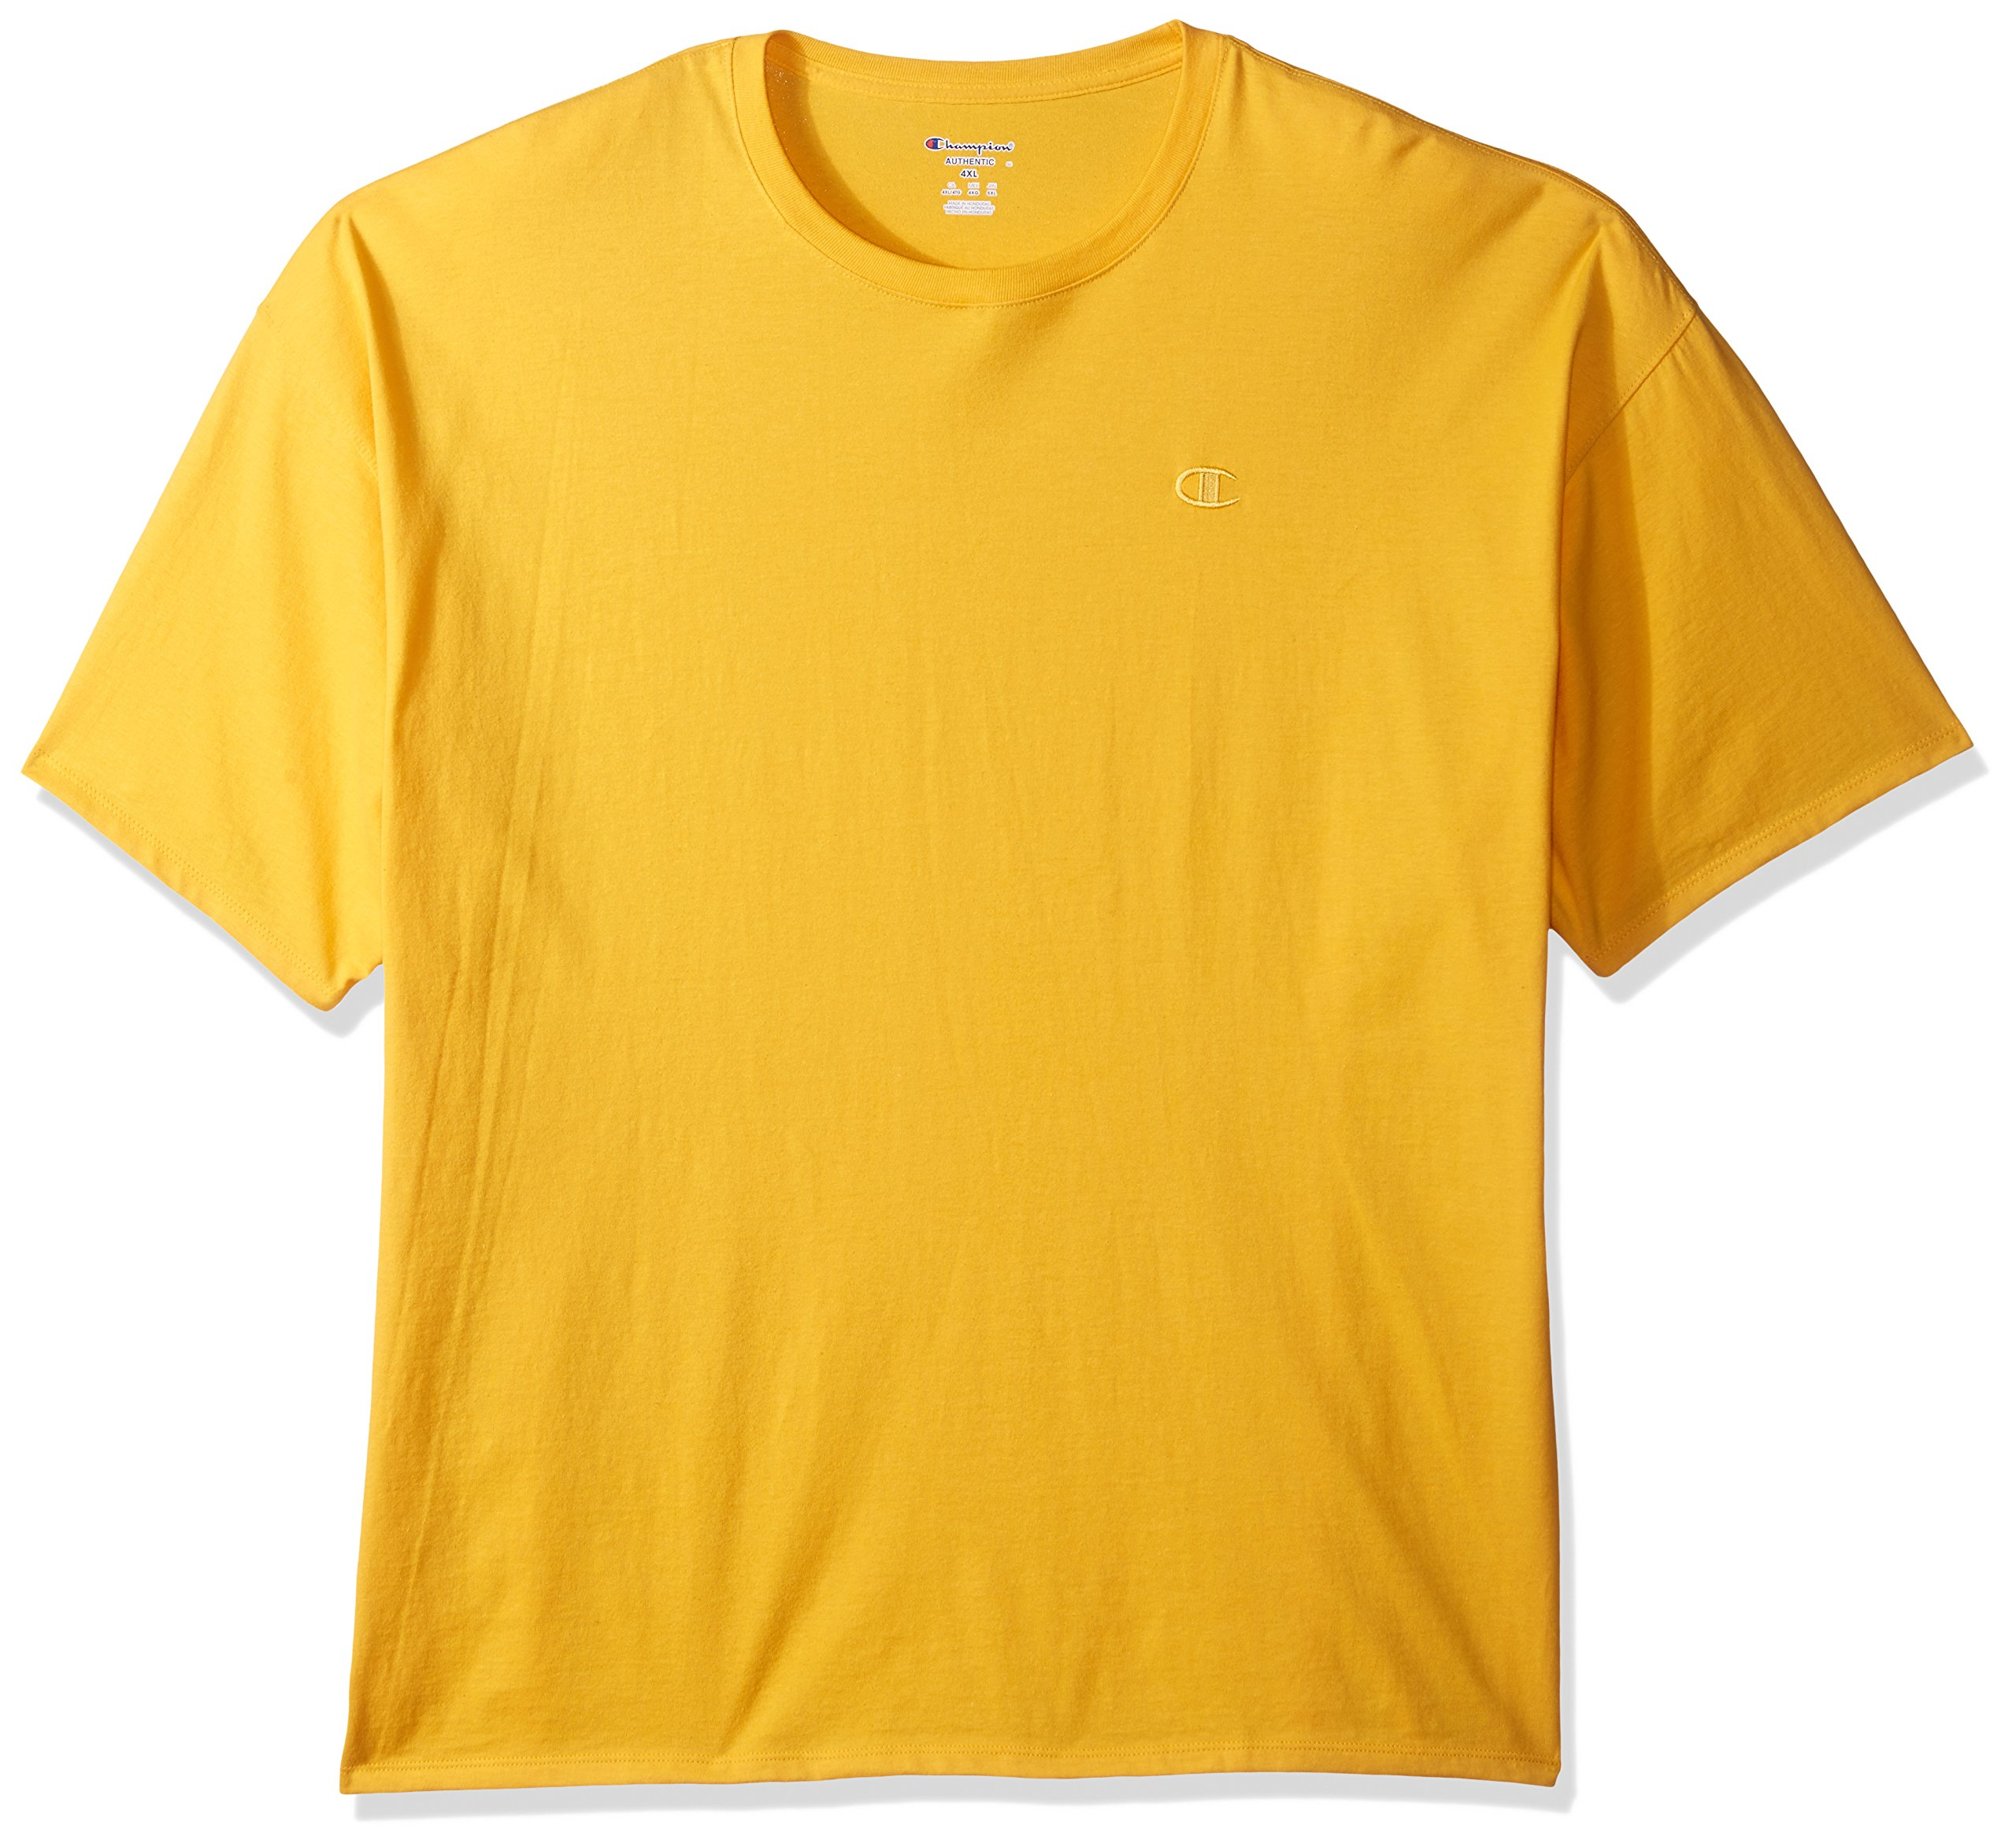 0223e3ec2 Galleon - Champion Men's Classic Jersey T-Shirt, Team Gold, 4X Large